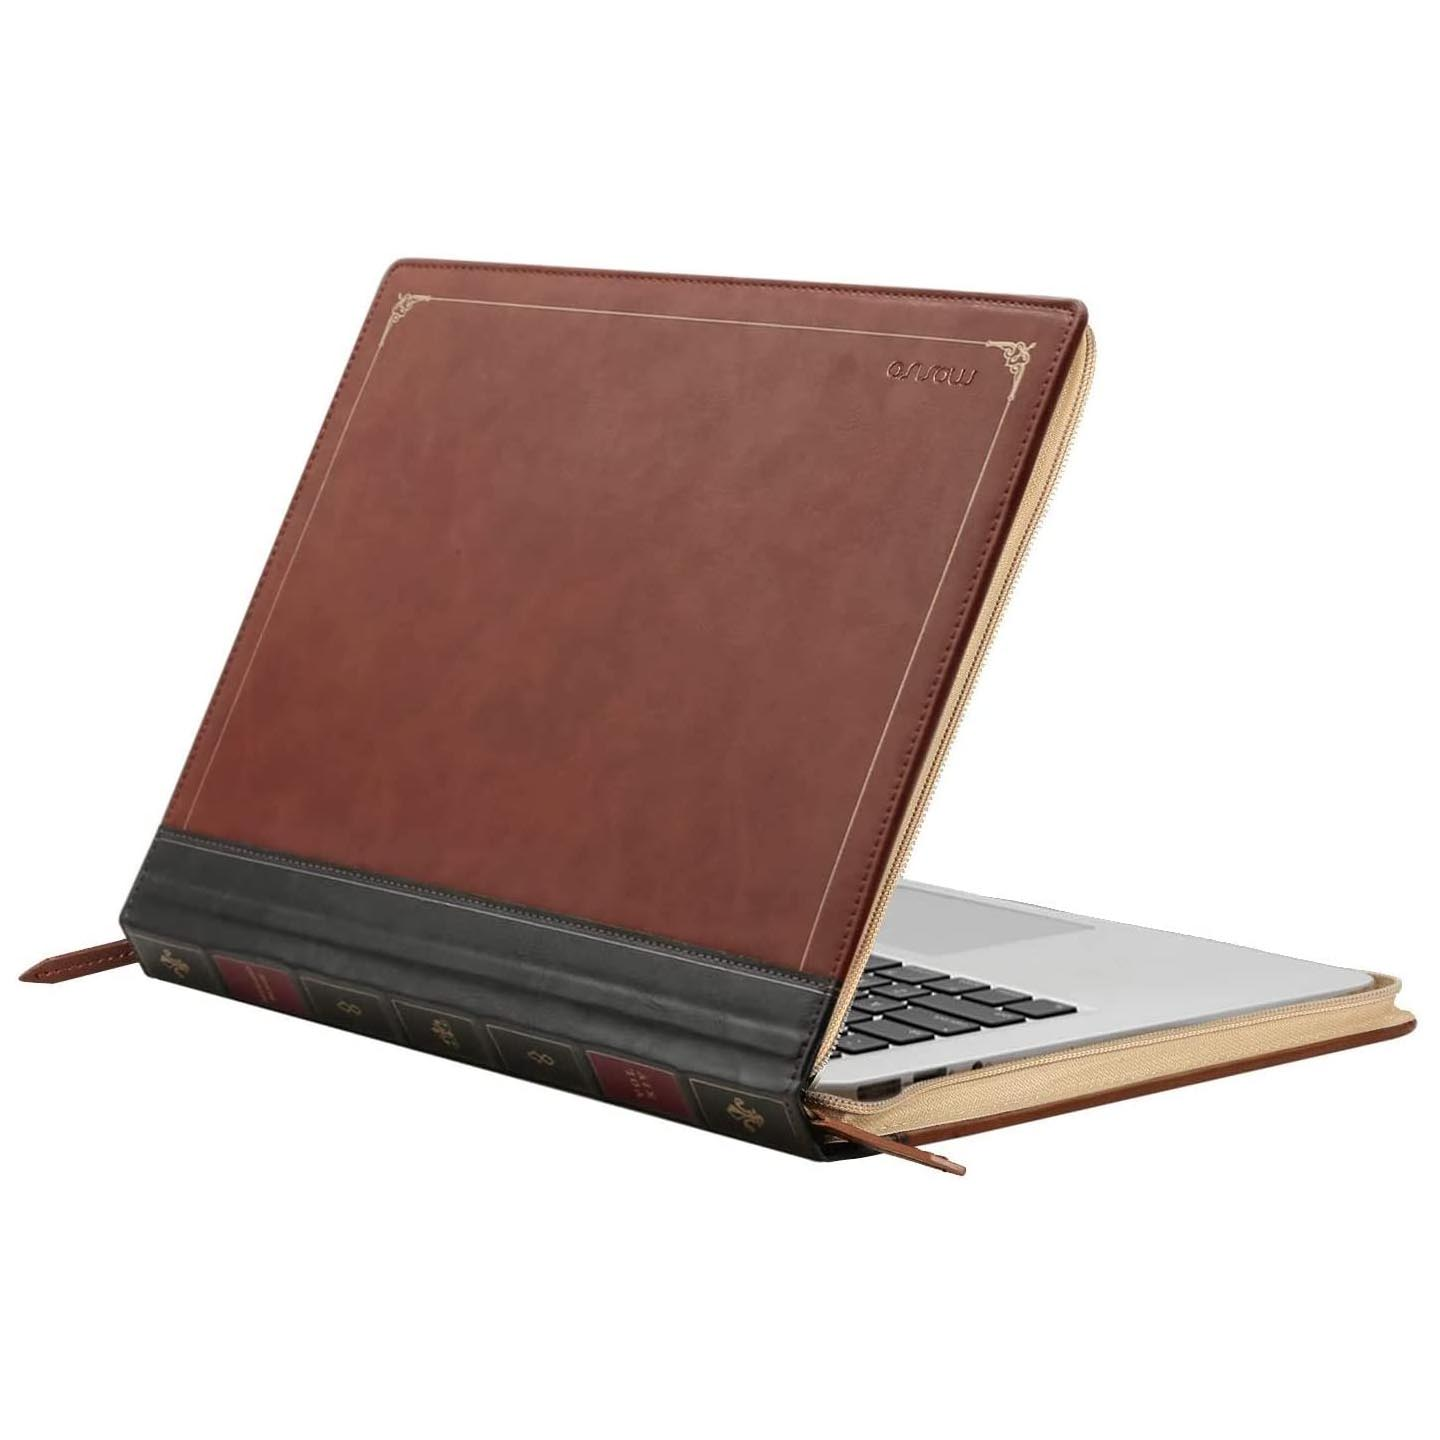 Leather-Bound Book Laptop Case